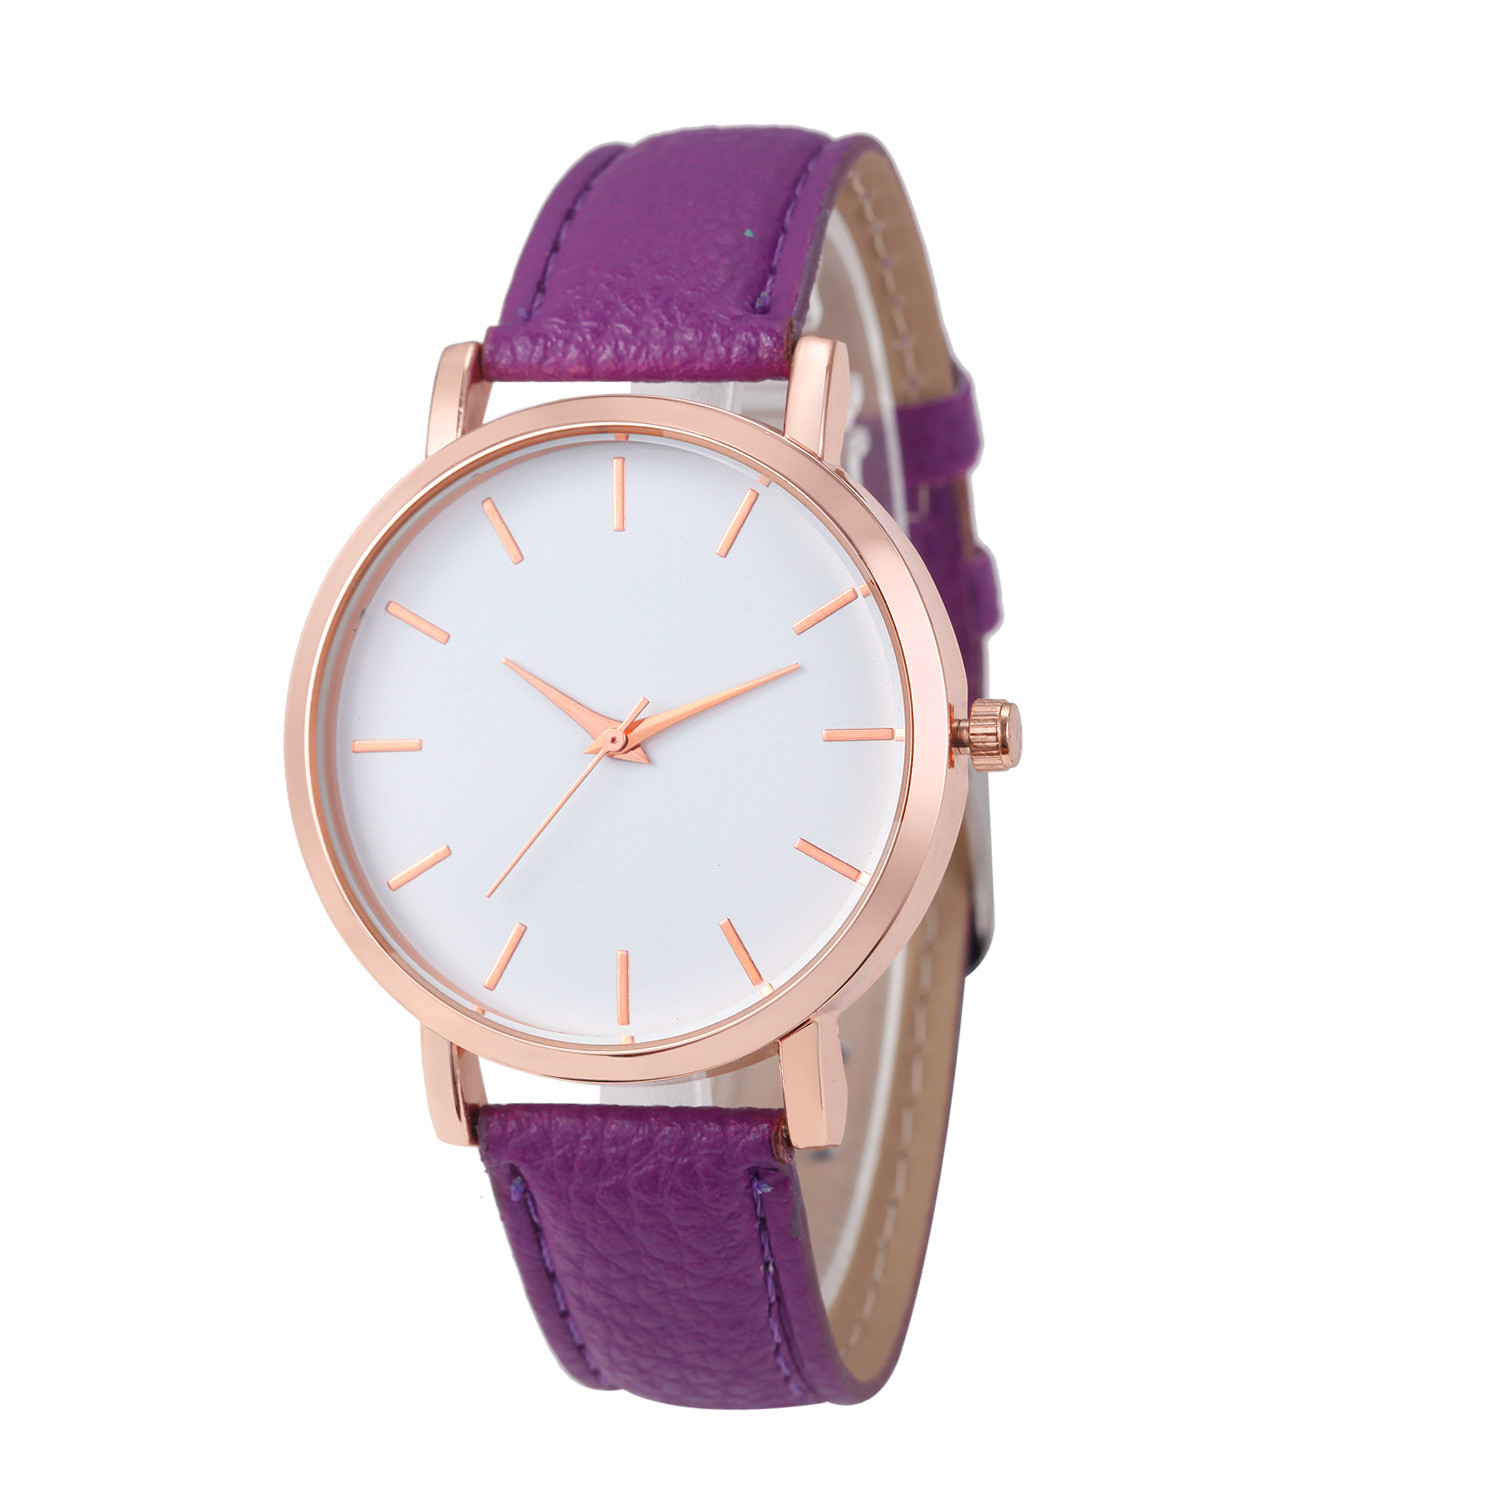 Fashion Lady Watch with Purple Leather Strap